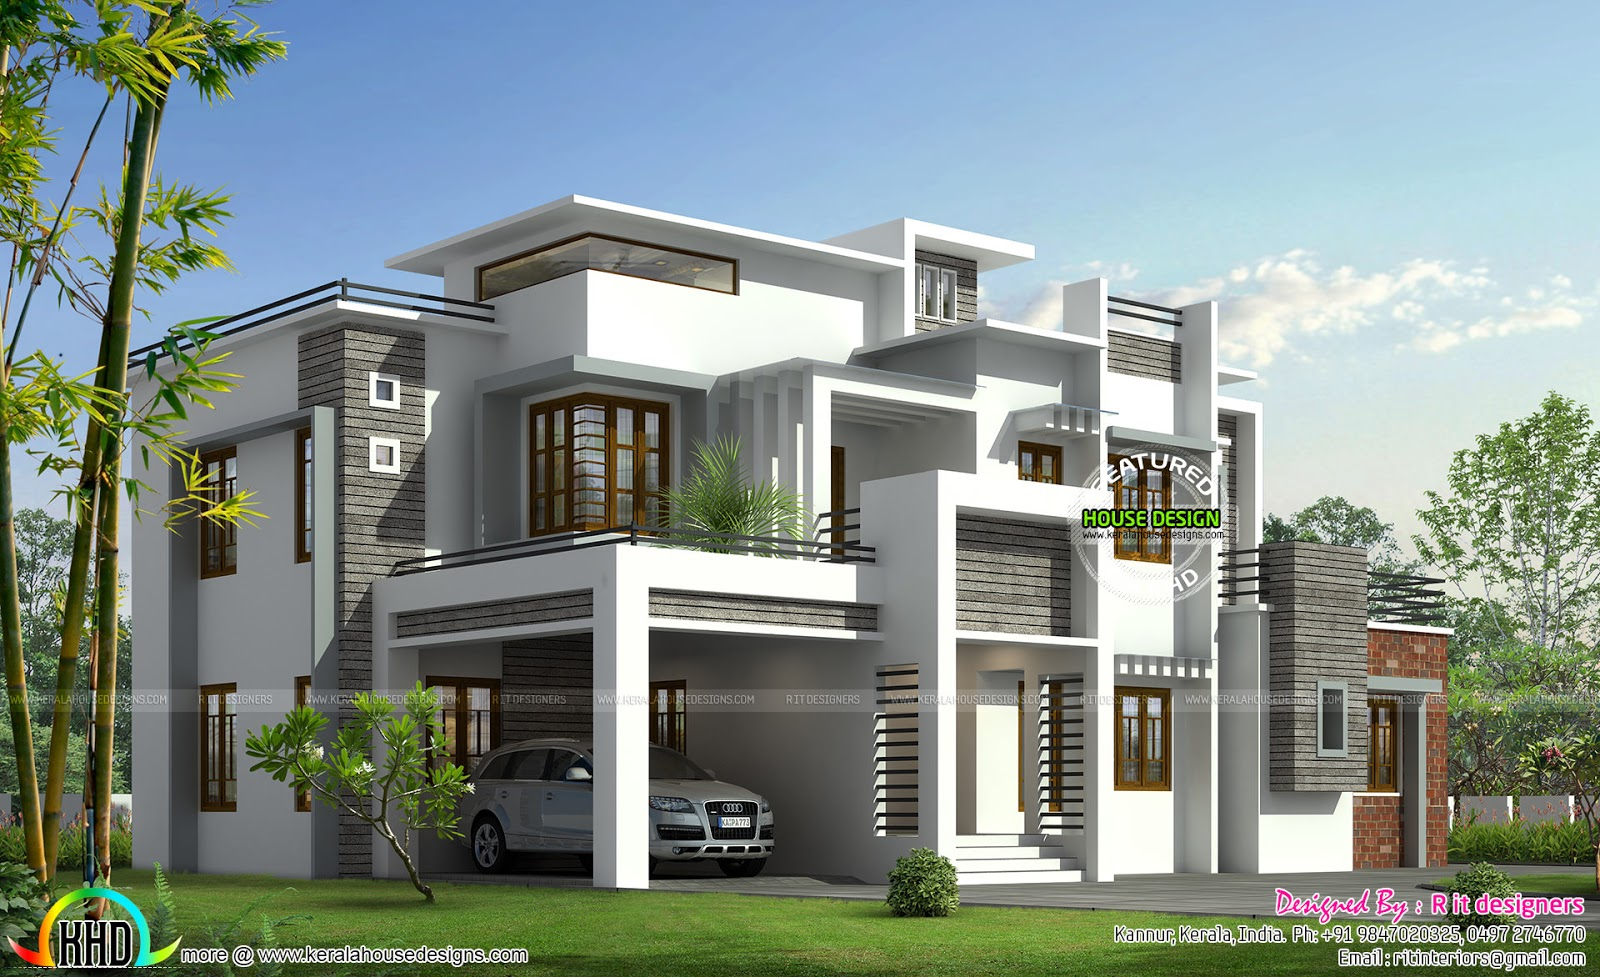 Box model contemporary house kerala home design and for Contemporary floor plans for new homes